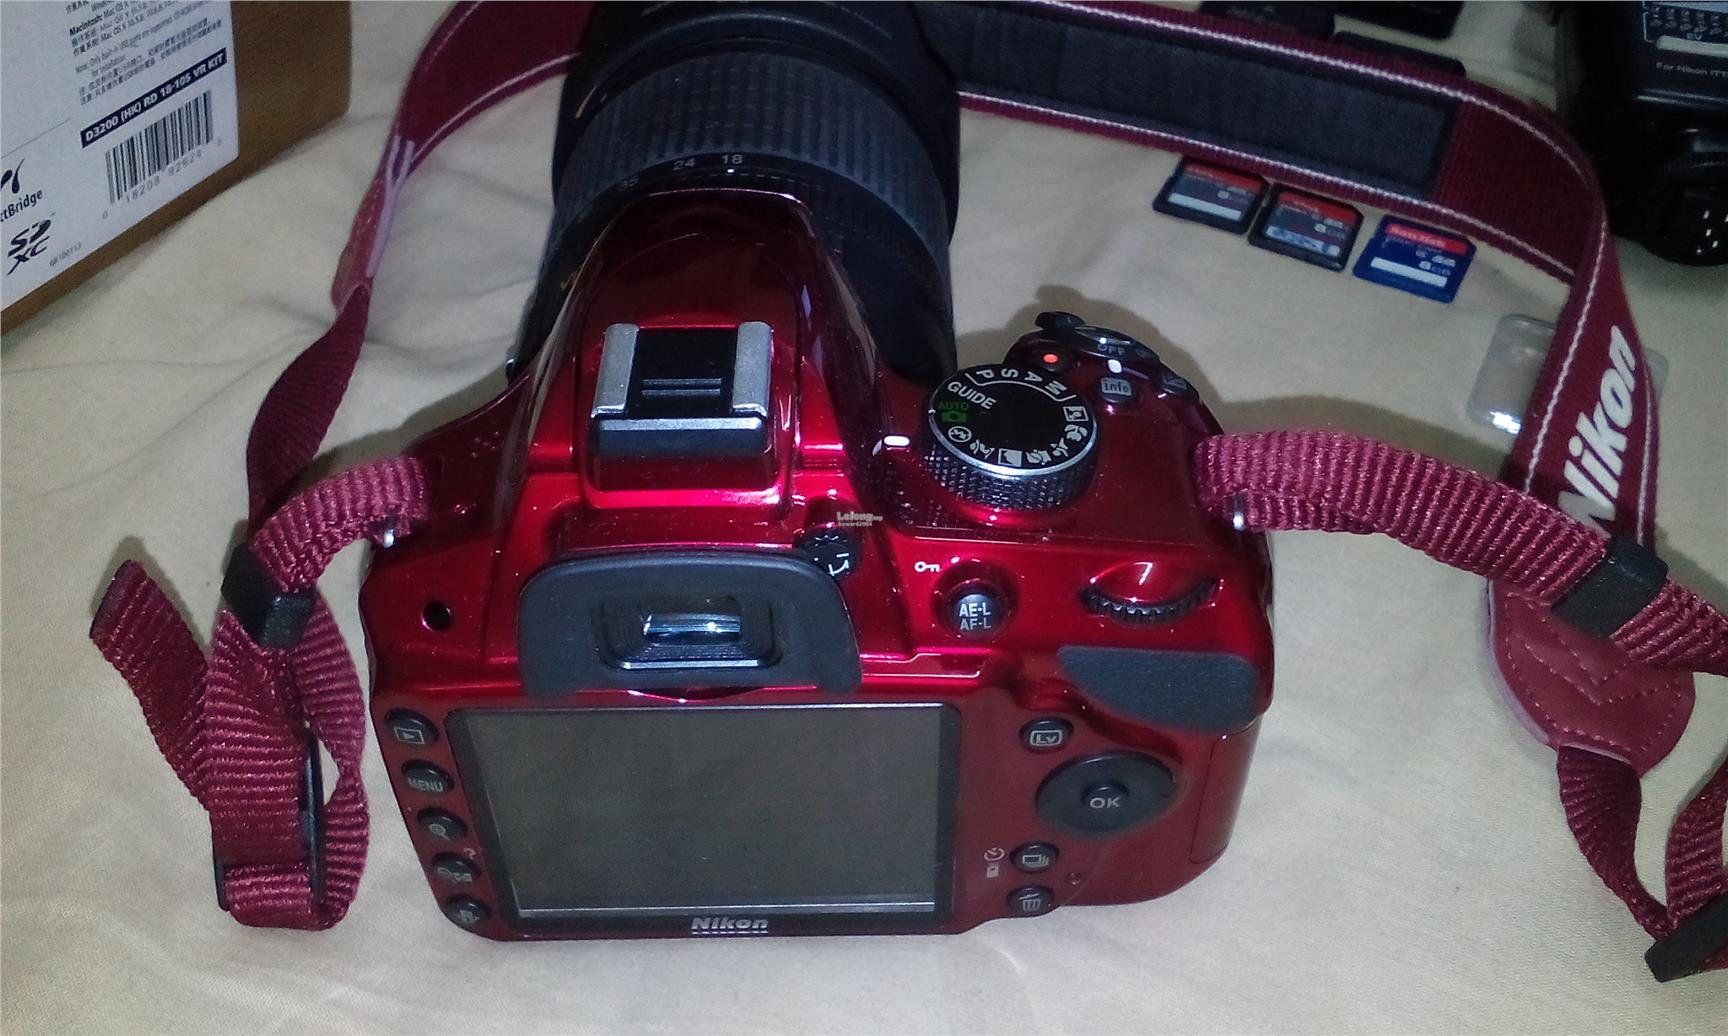 NIKON D3200 Kit AF-S 18-105mm VR Lens- Red With Nissin Di622 Mk2